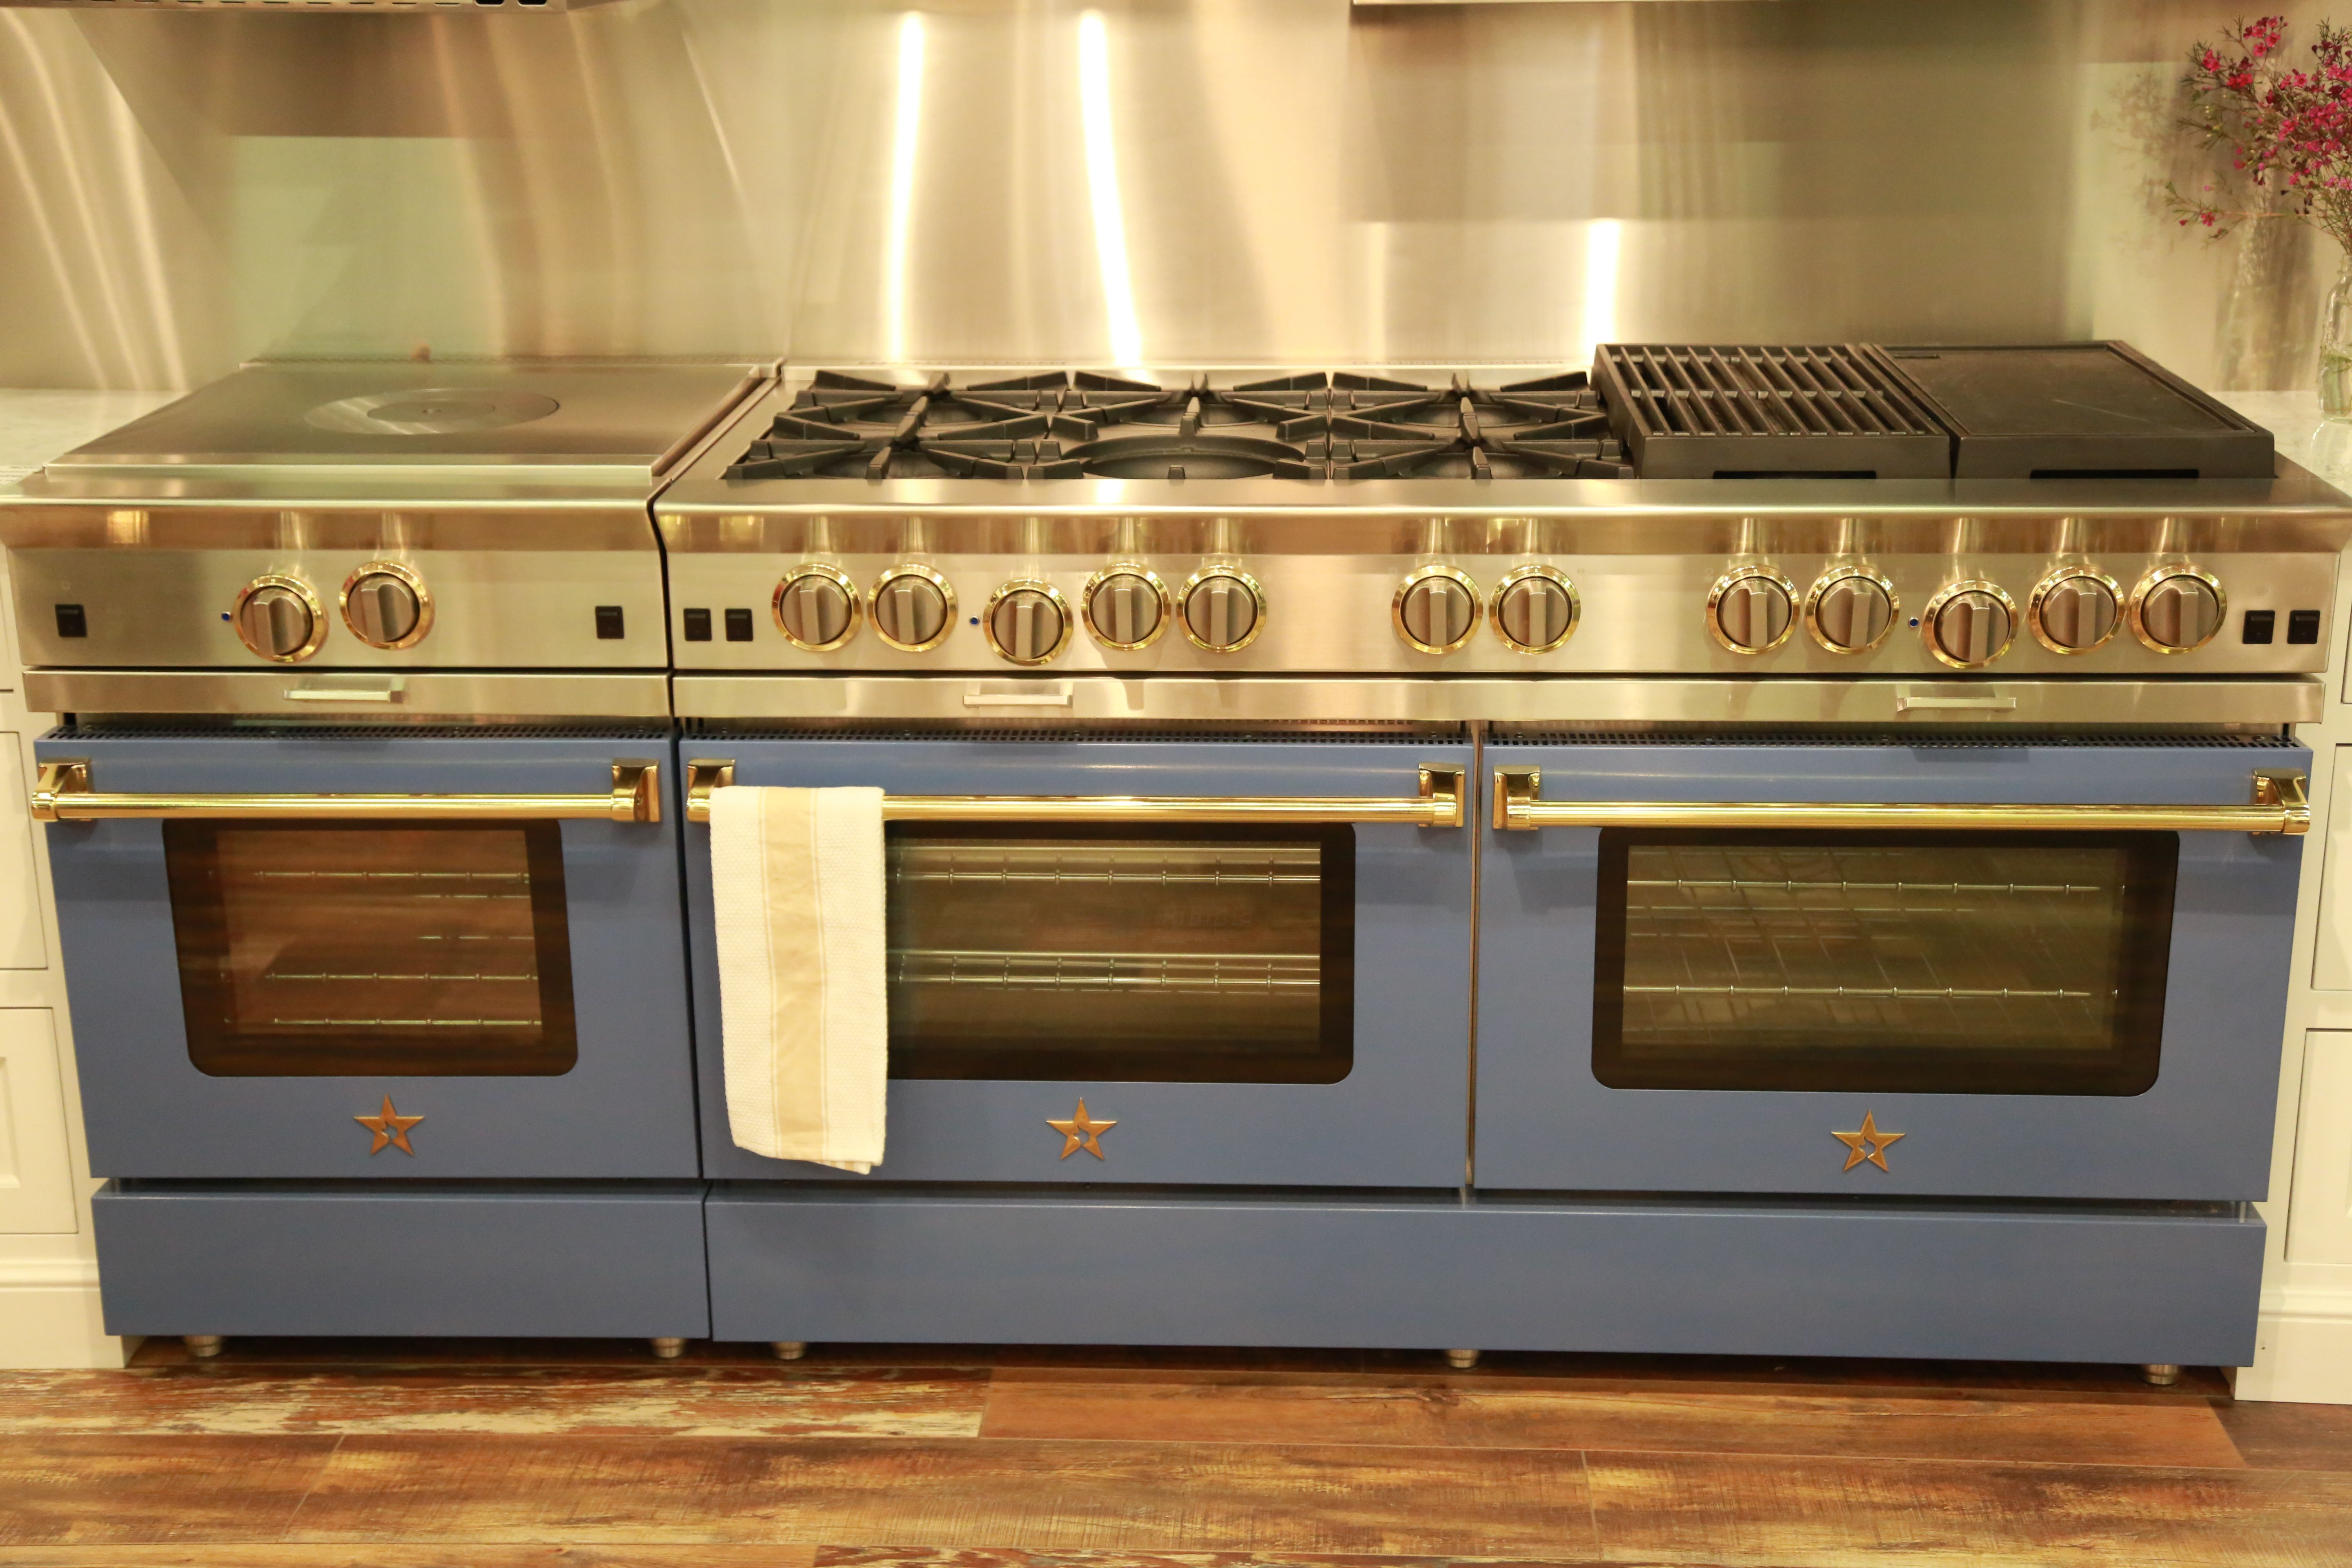 A 60 Bluestar Platinum Range With A 24 Rnb Frenchtop Companion Piece With A Matching Chefs Kitchen Design Professional Kitchen Appliances Kitchen Appliances